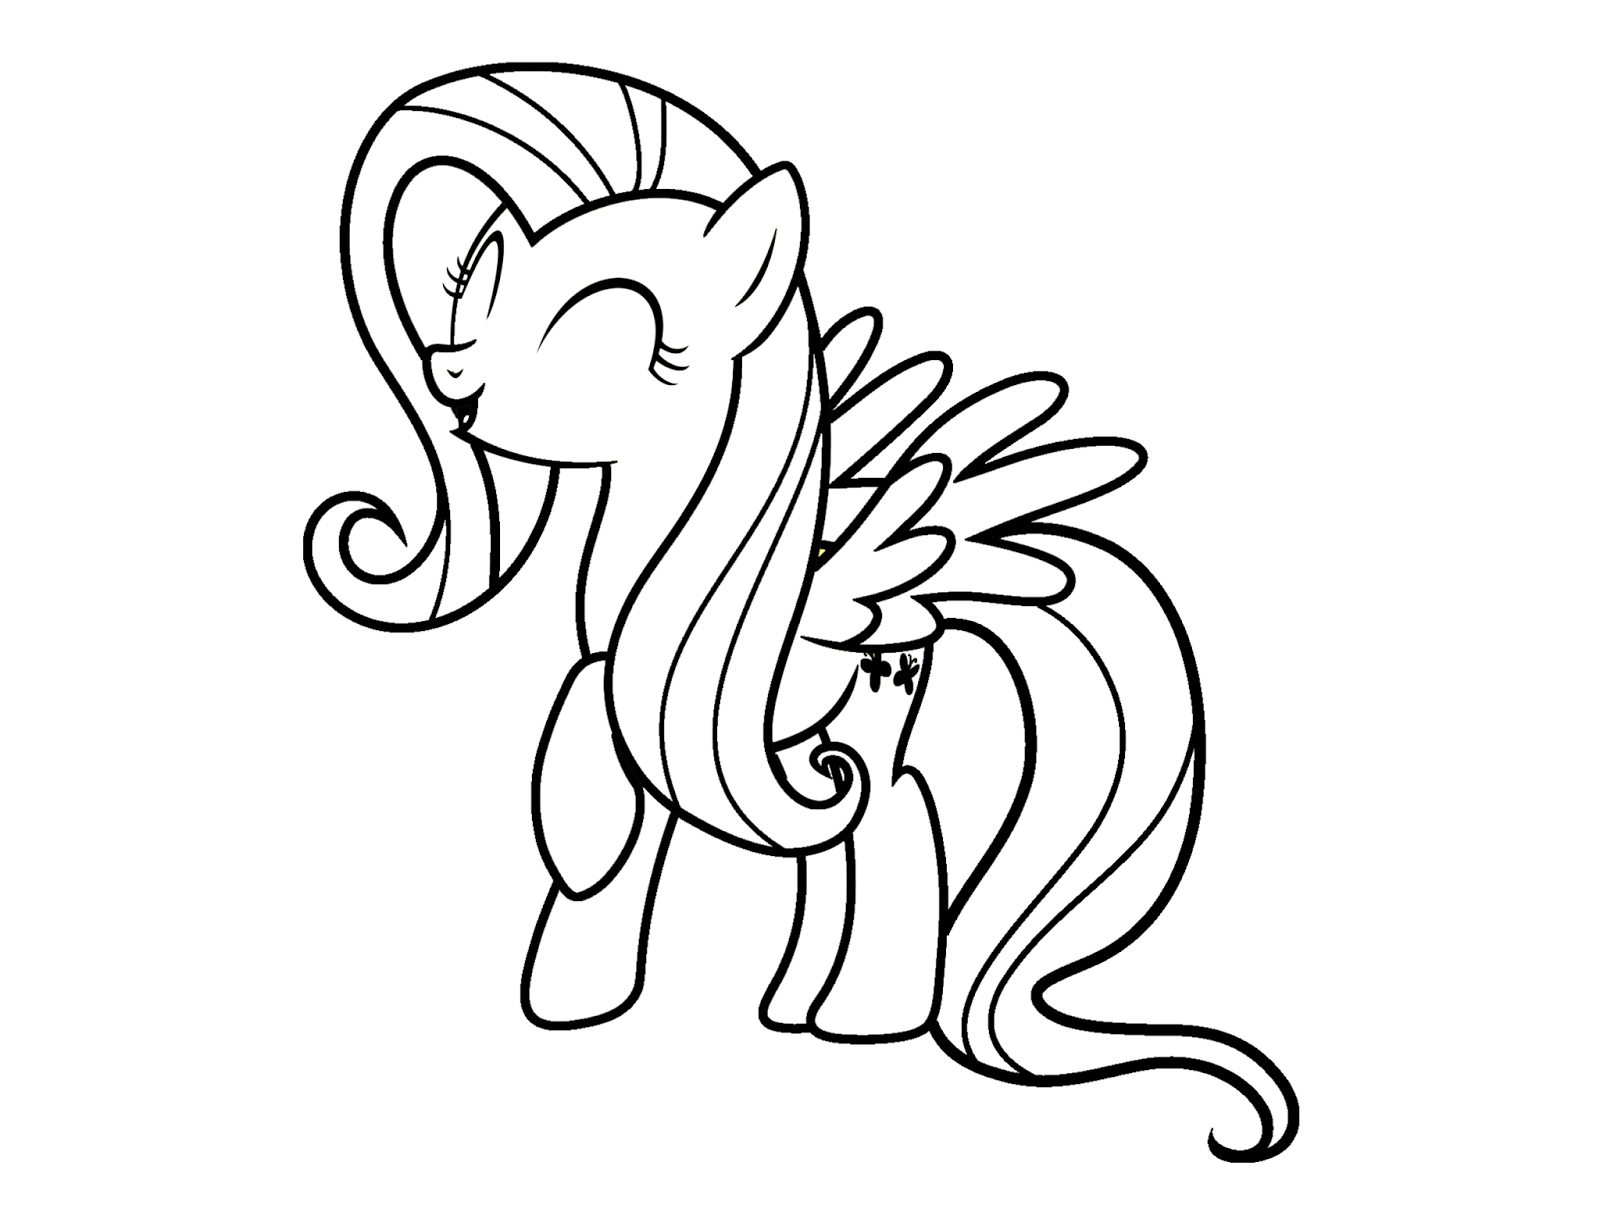 fluttershy coloring pages fluttershy coloring pages best coloring pages for kids coloring fluttershy pages